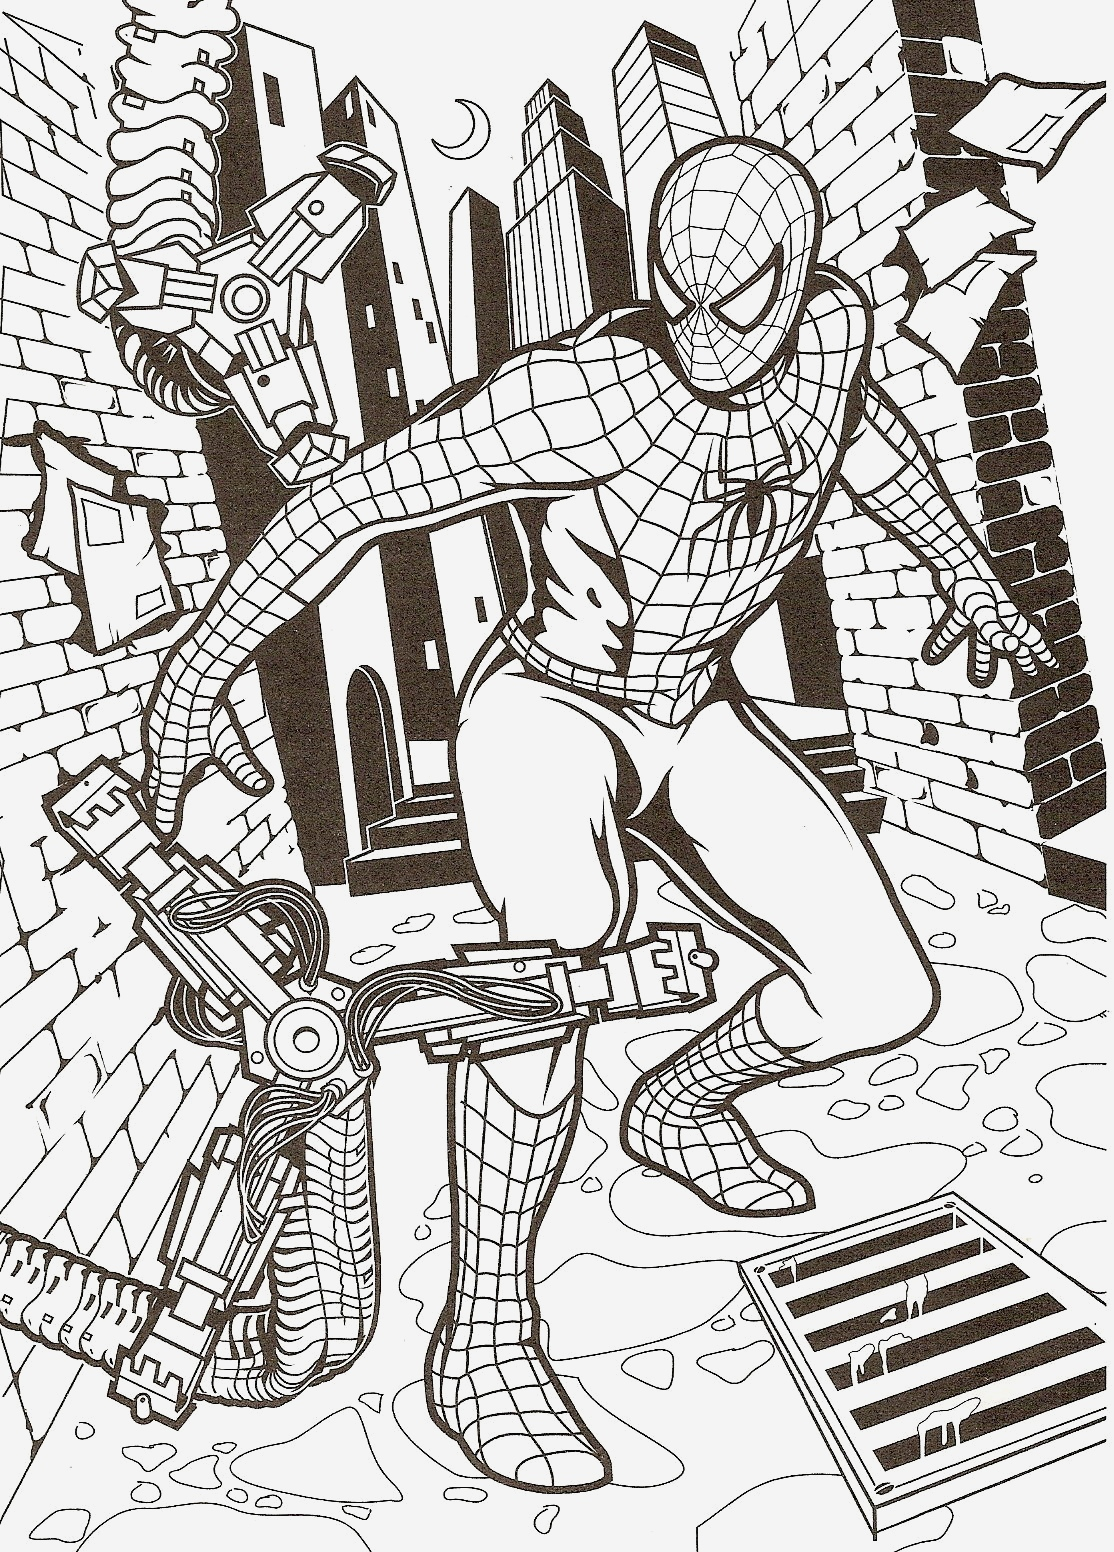 Coloriage De Spiderman Elegant Coloriage Spiderman Gratuit Colorier Dessin Imprimer Of Coloriage De Spiderman